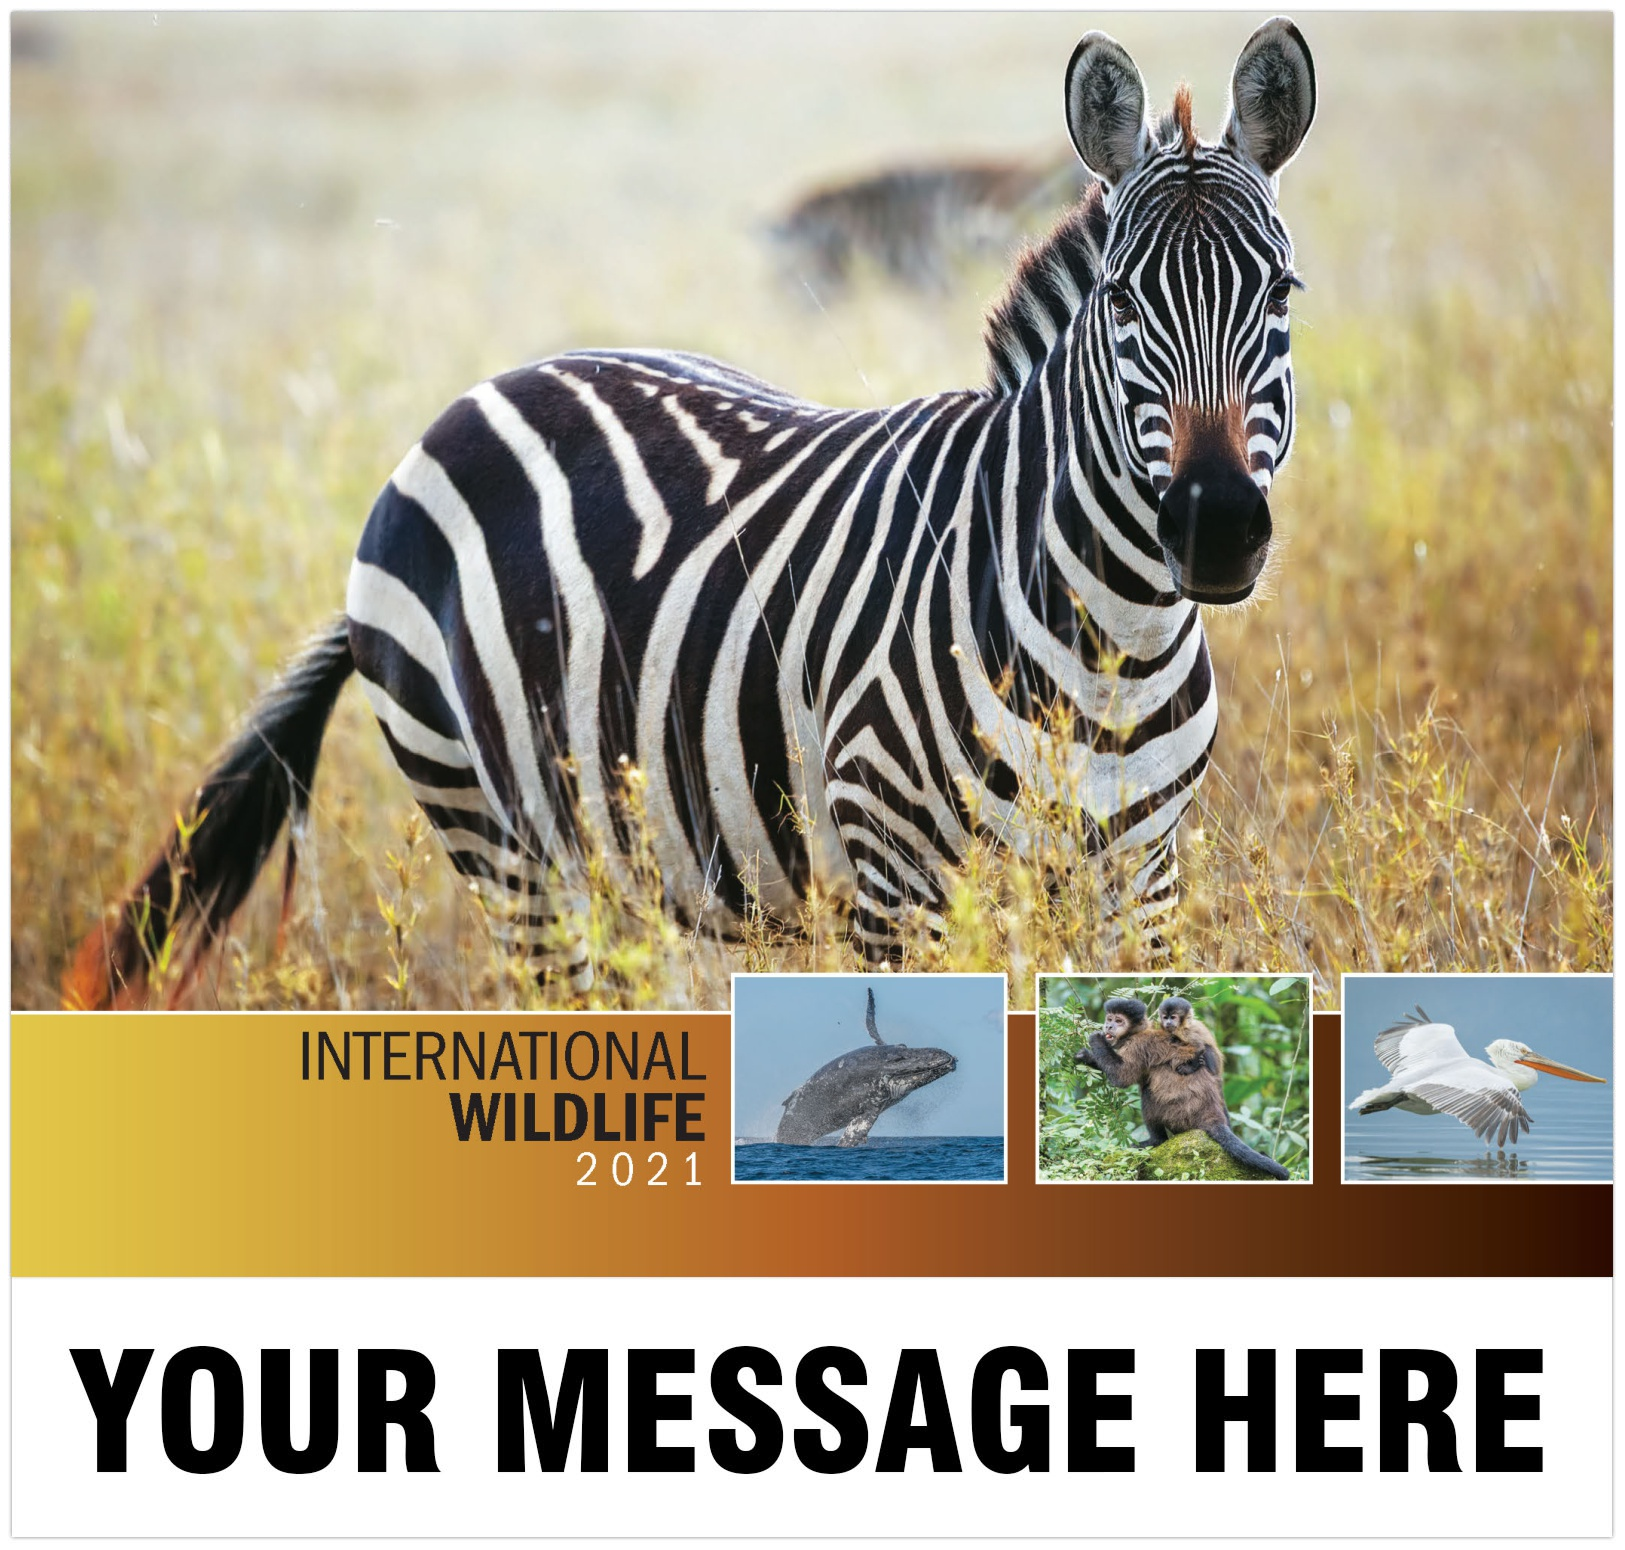 2021 International Wildlife Promotional Calendar